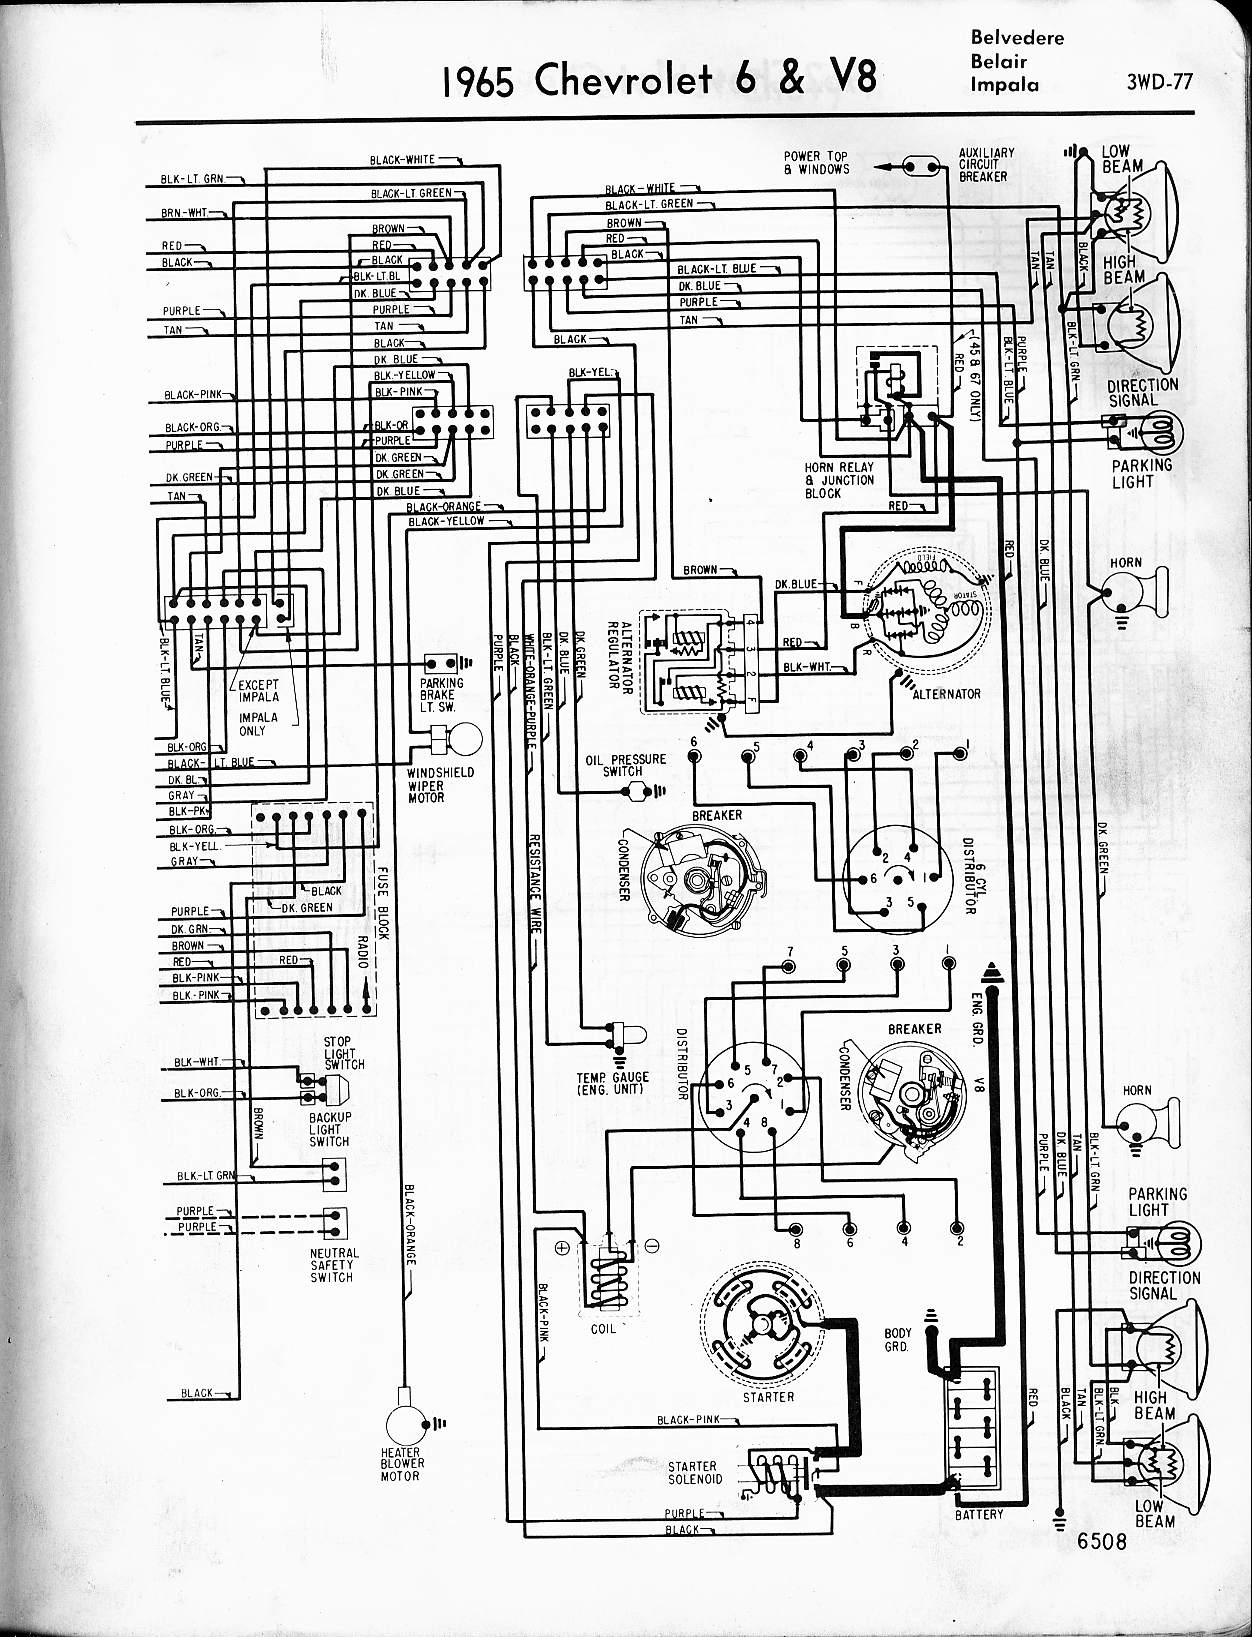 MWireChev65_3WD 077 chevy diagrams 1966 chevy impala wiring diagram at crackthecode.co